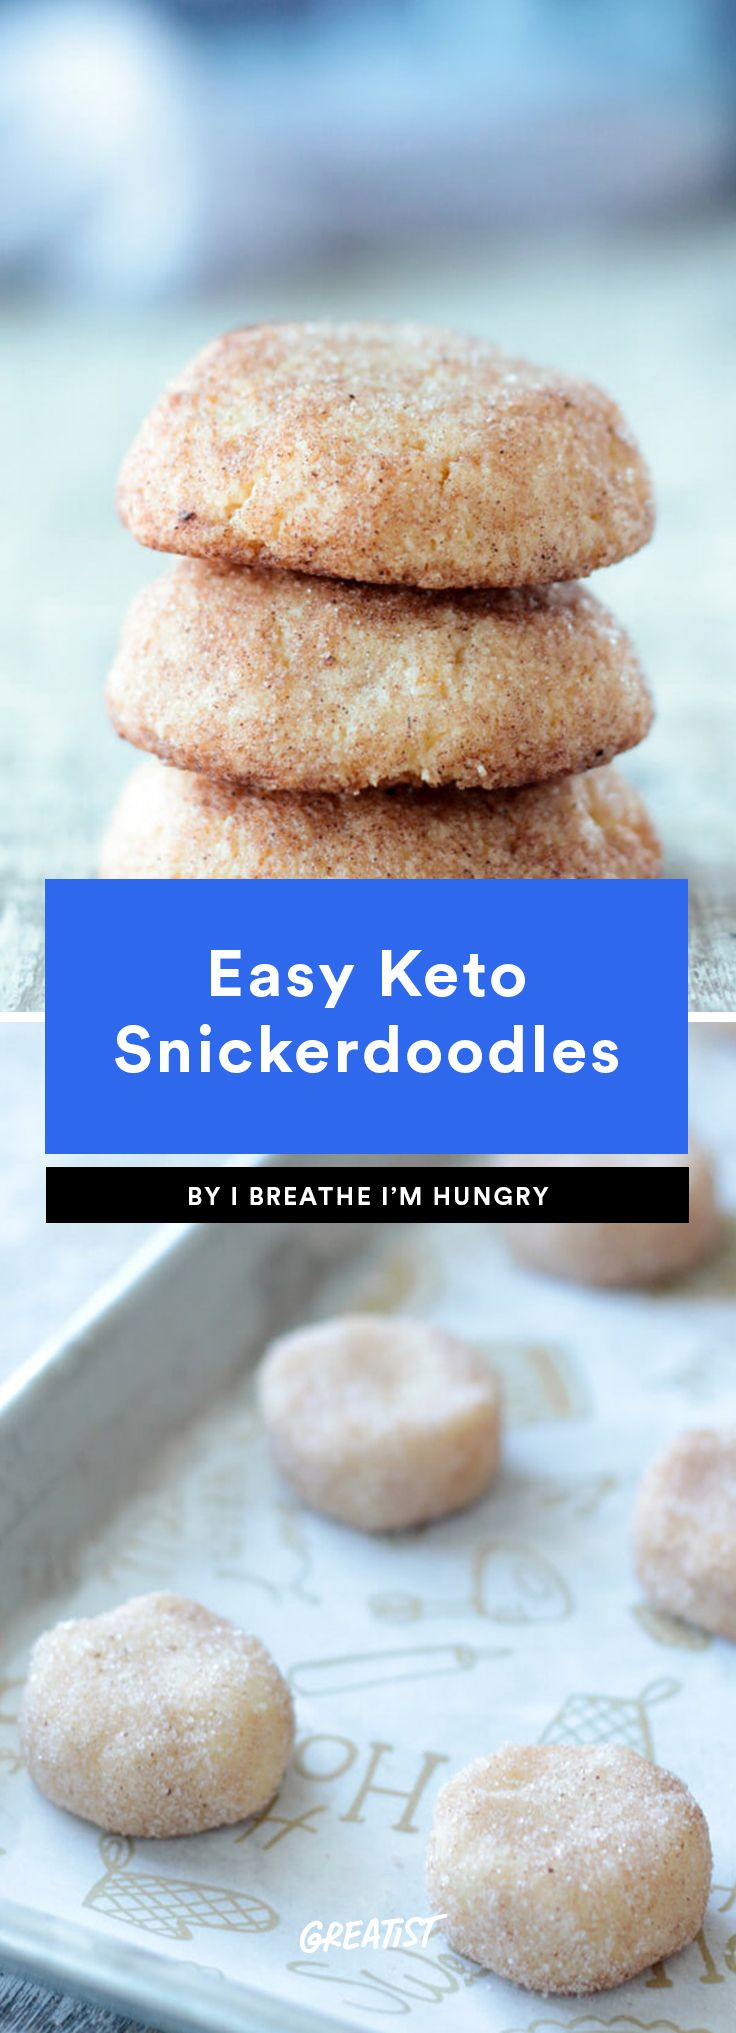 9 Keto Cookie Recipes That Are Somehow Part of a Diet ...